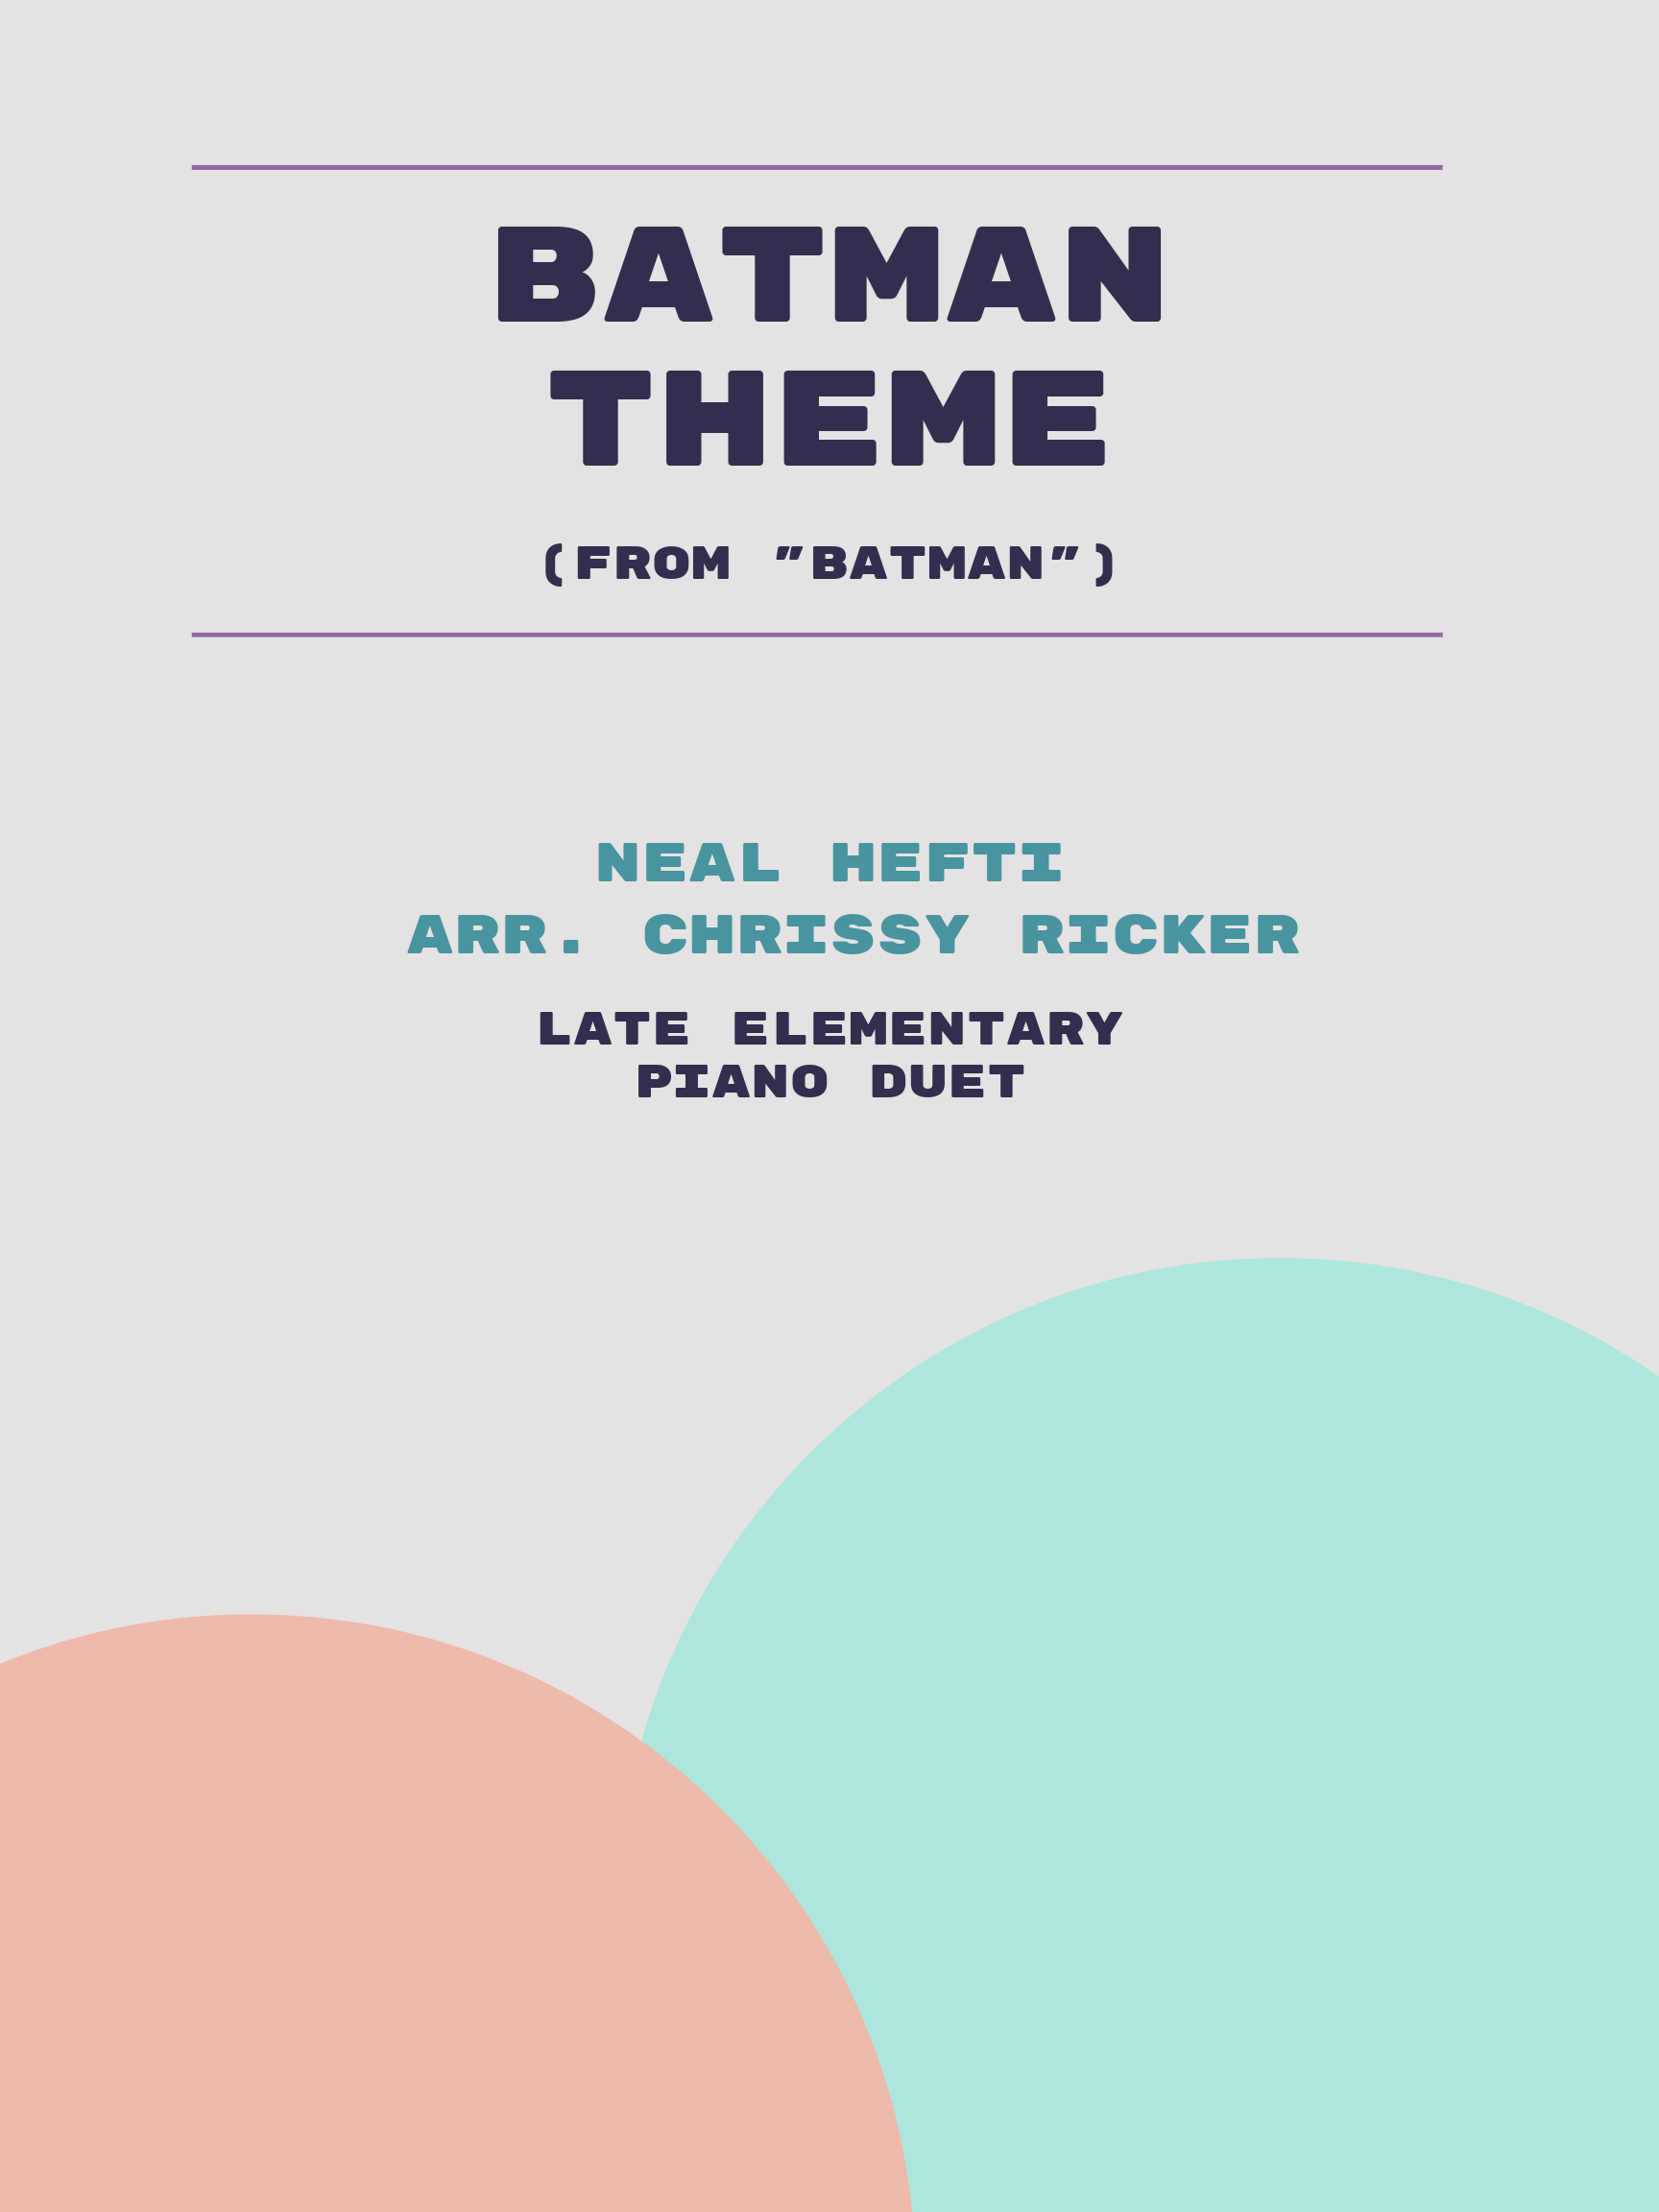 Batman Theme by Neal Hefti